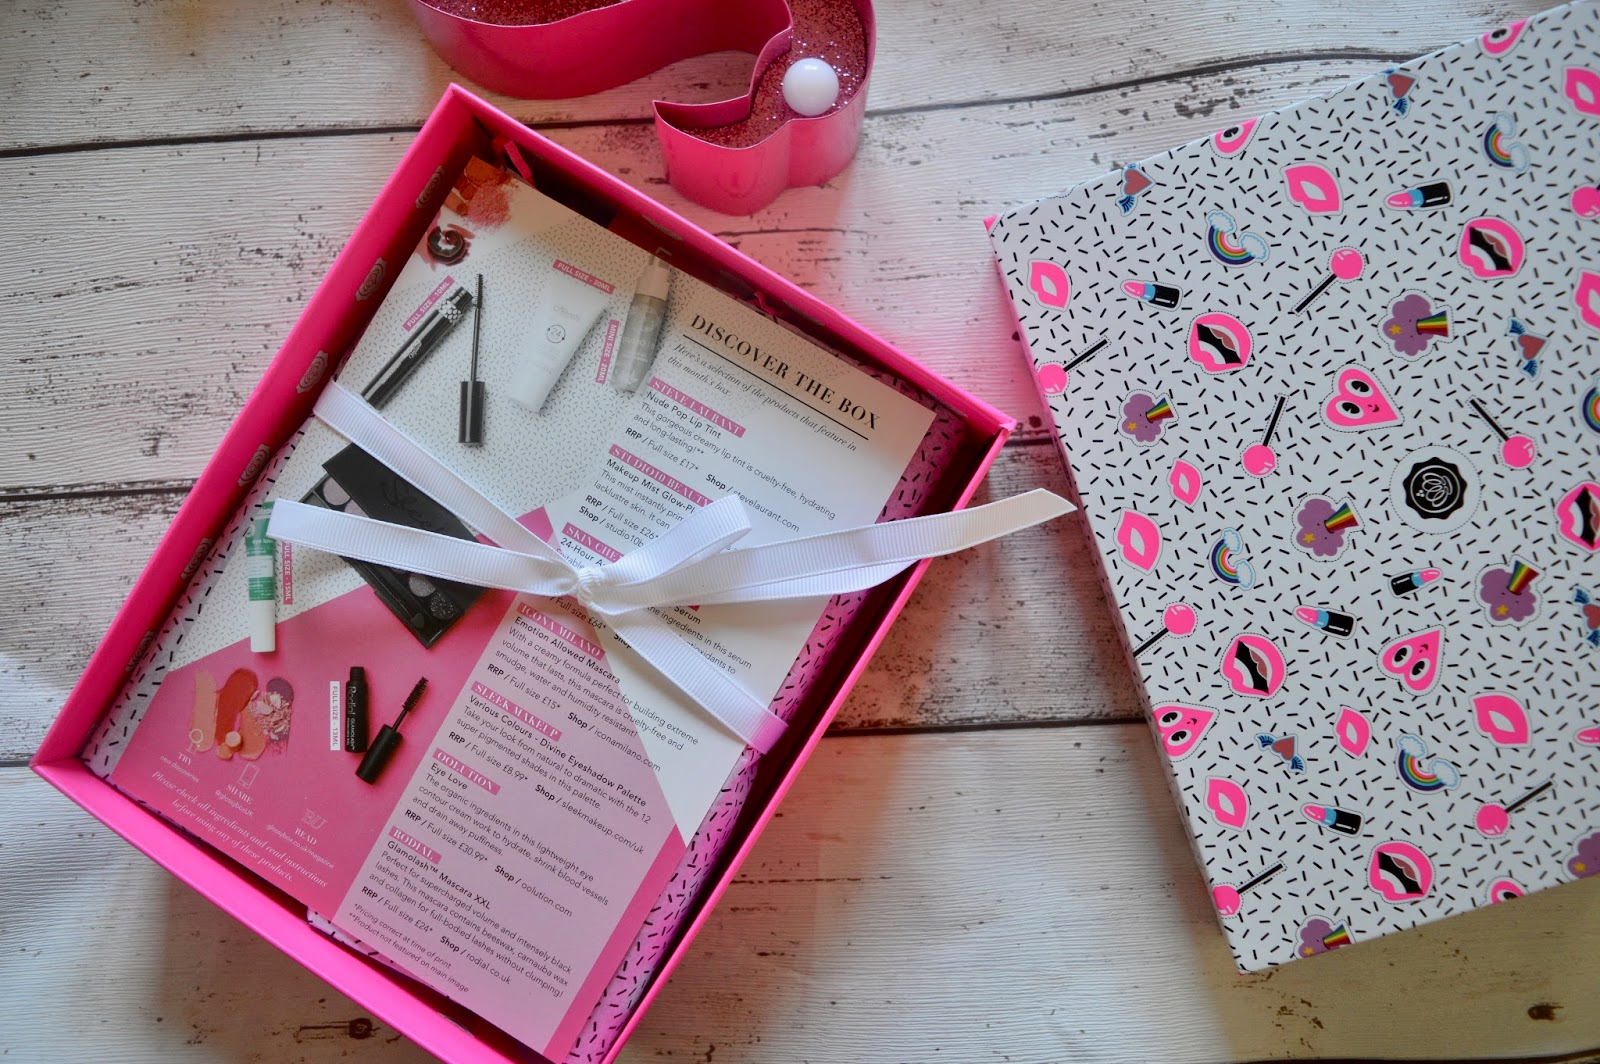 February Glossybox Galentines edition